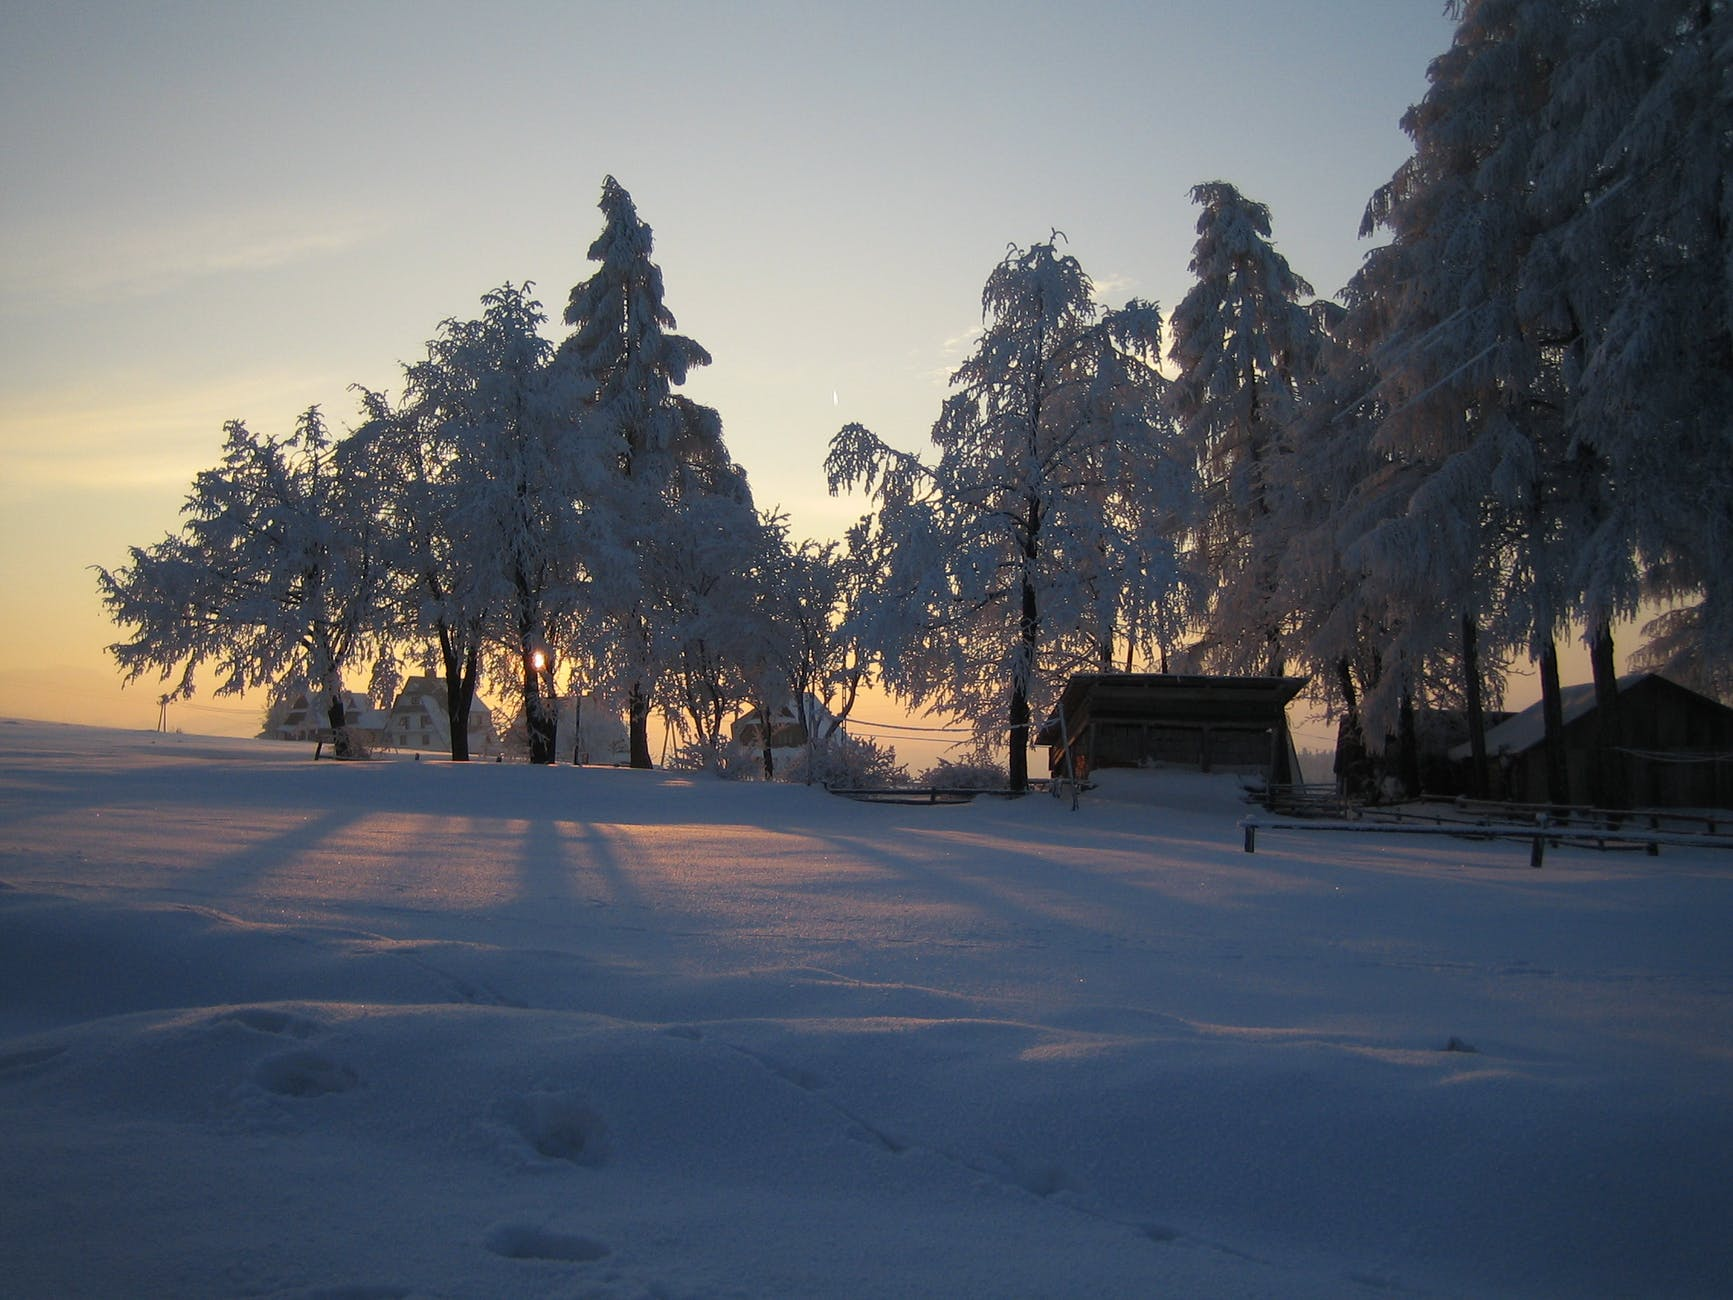 calm sunny day in winter countryside